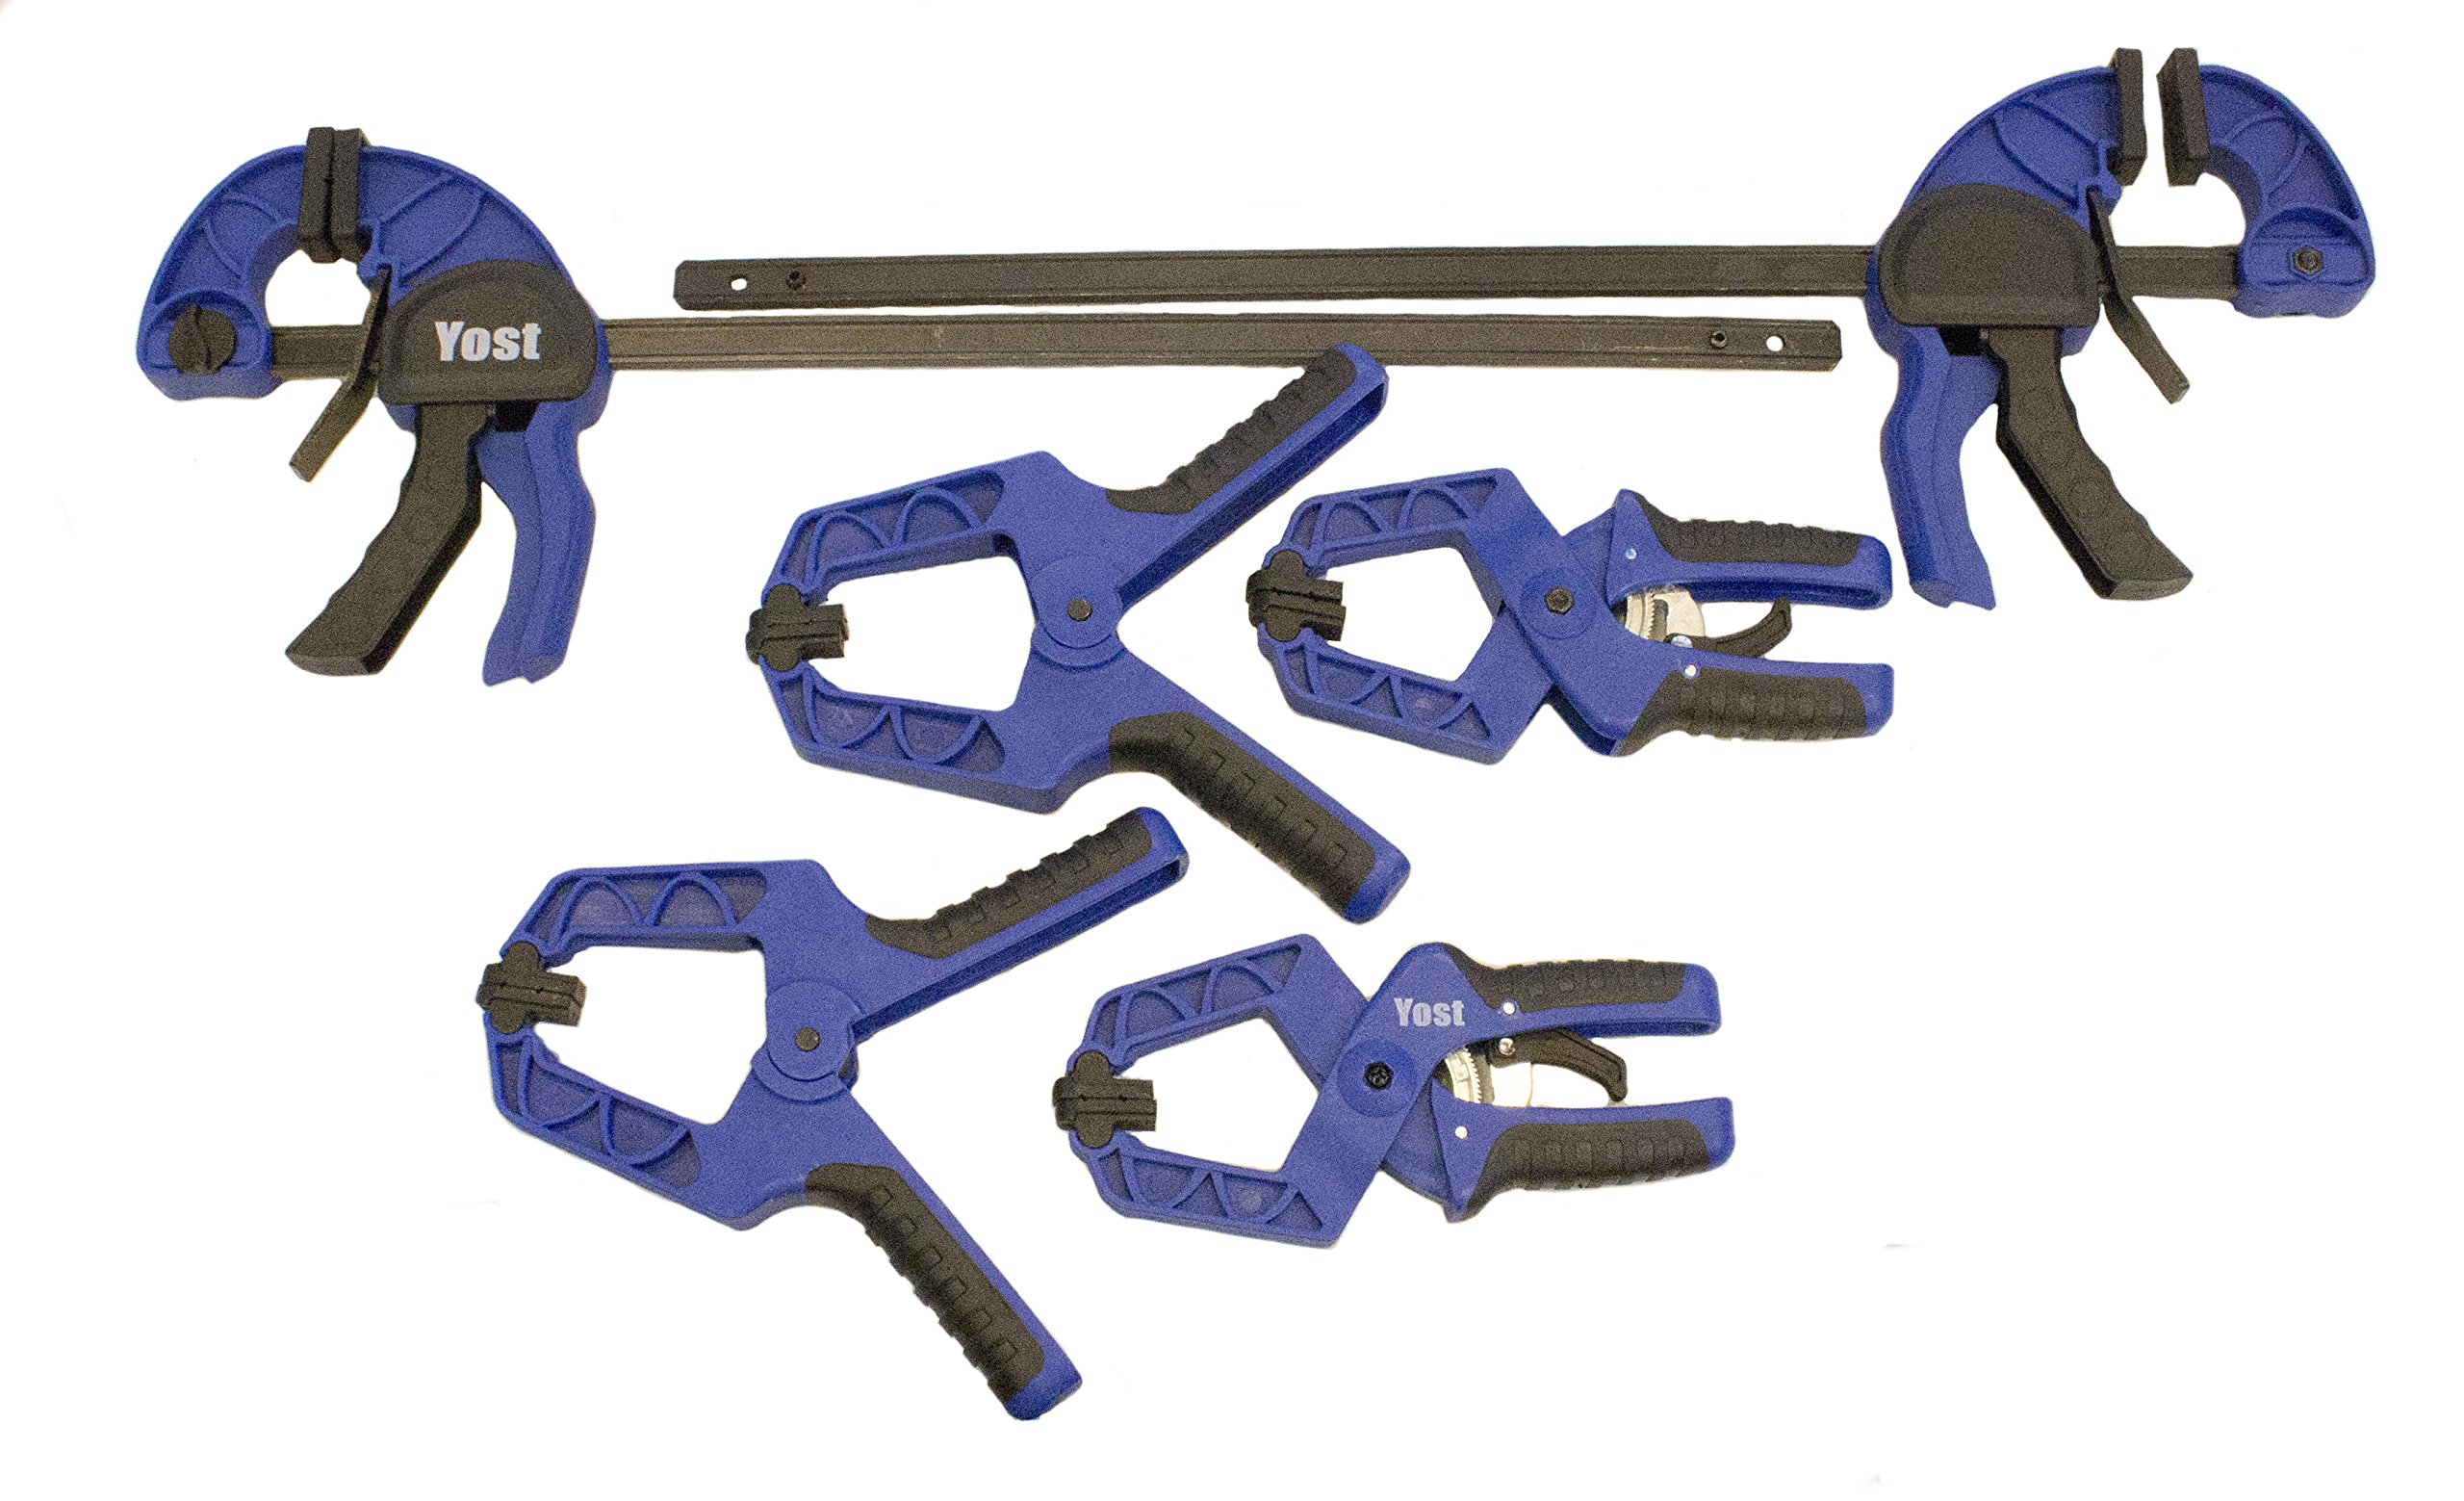 Yost Clamp Sets (Pack of 6)